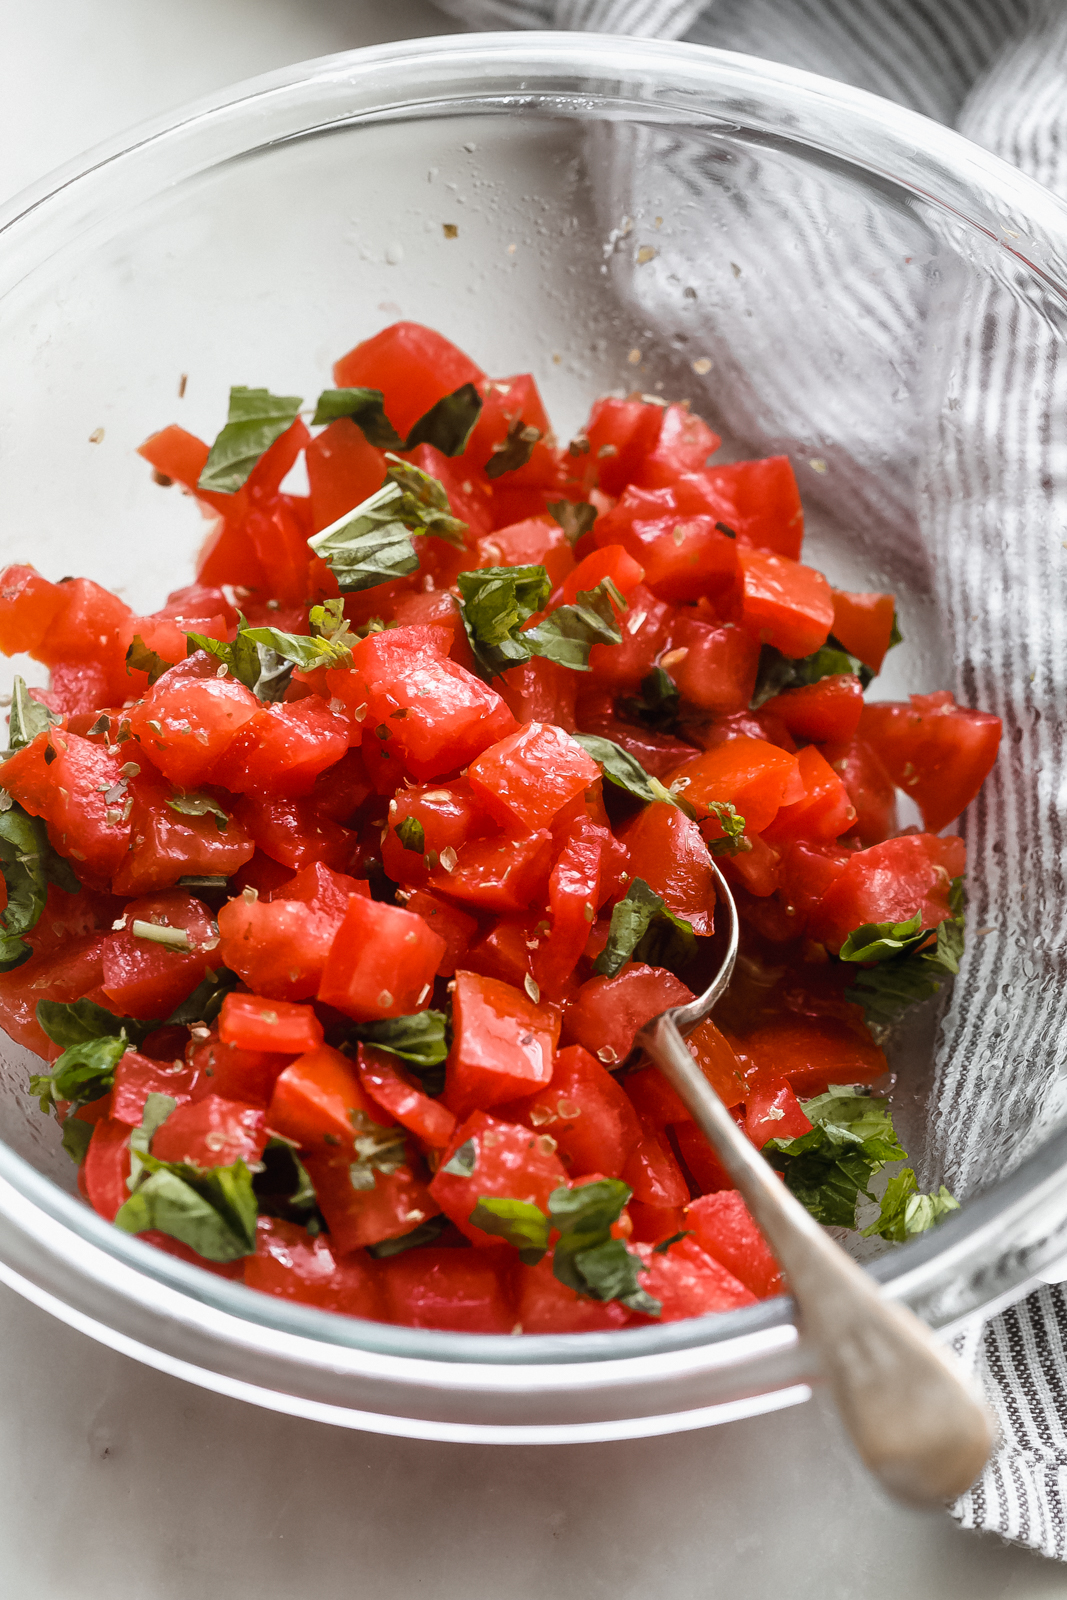 fresh tomatoes and basil tossed with seasonings in glass bowl with spoon